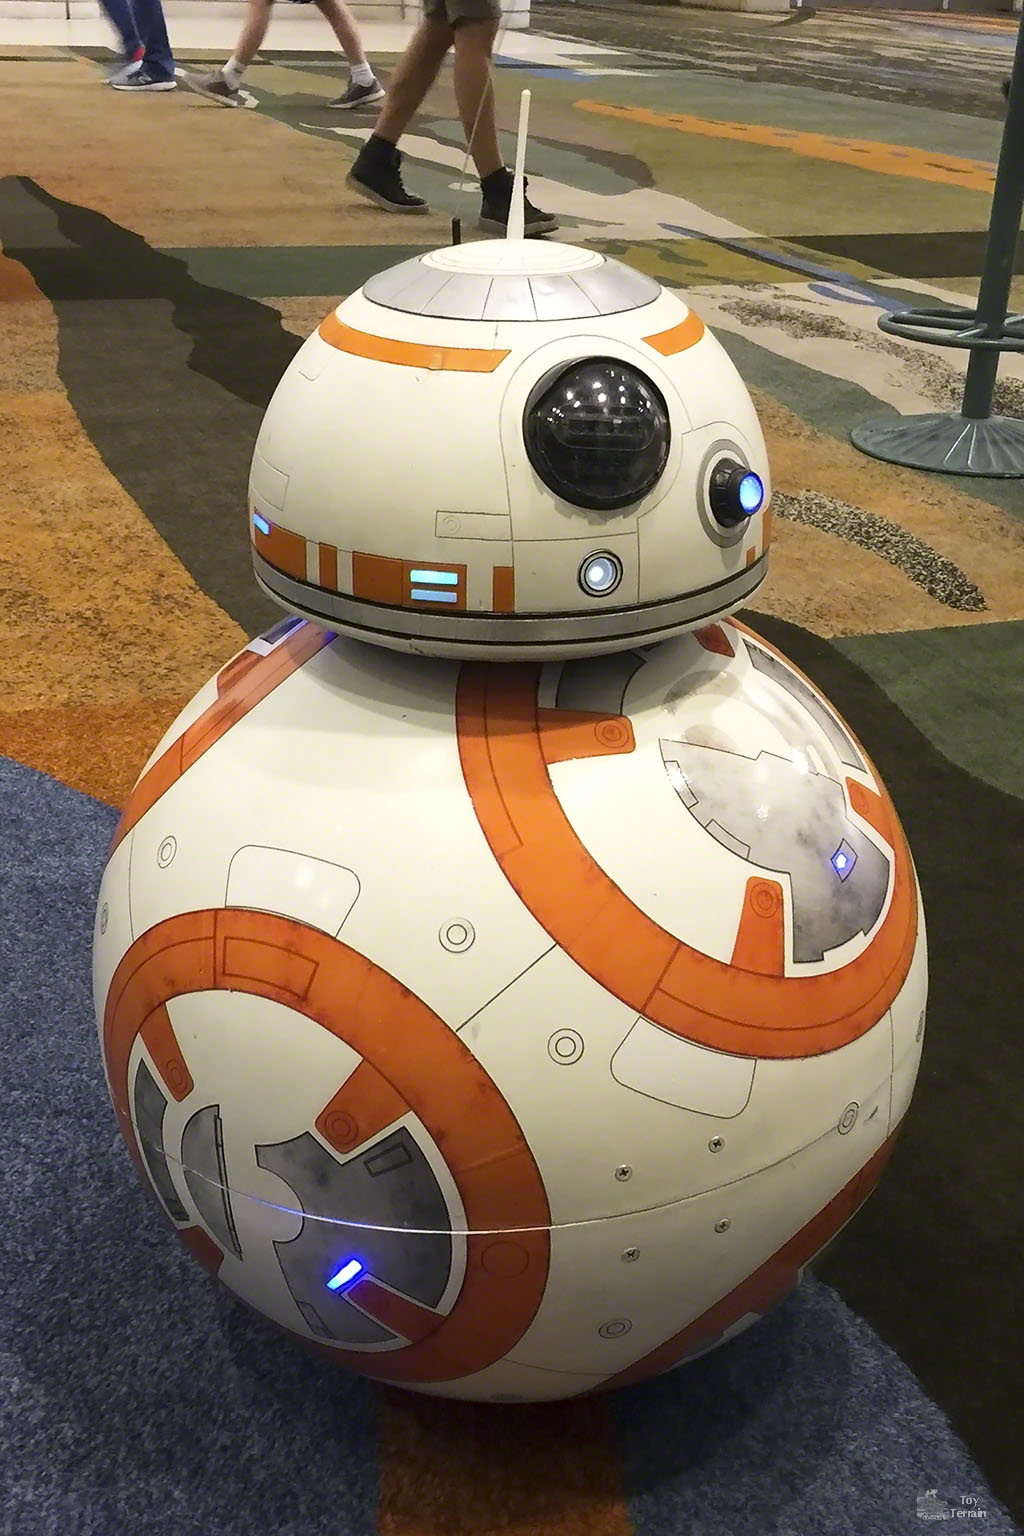 BB-8 real droid at Star Wars Celebration